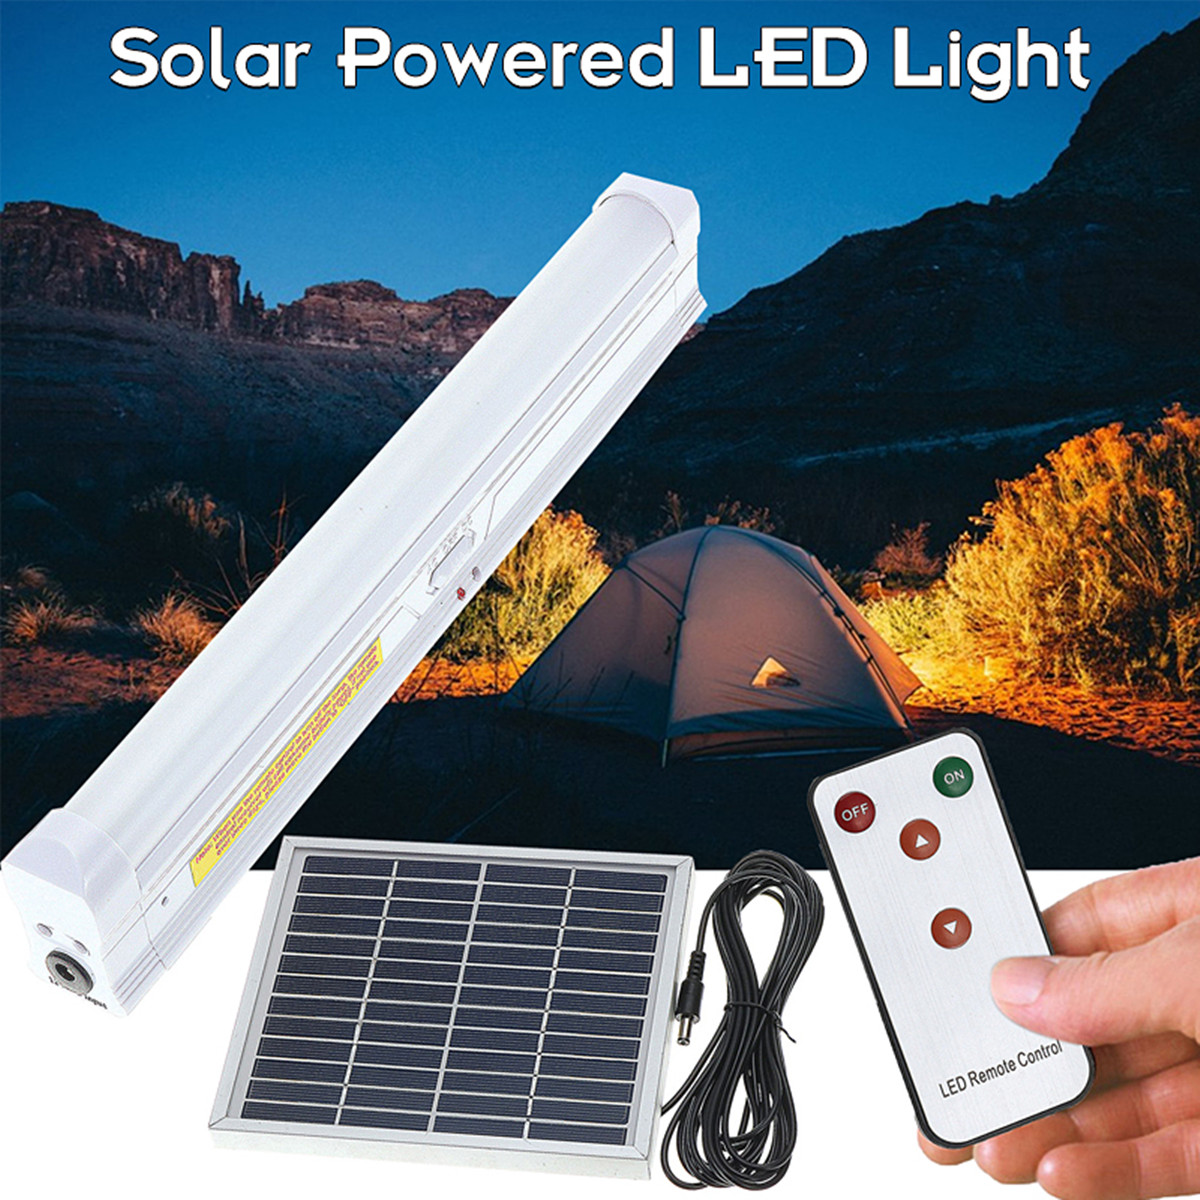 30 Led Remote Control Solar Light 5w Solar Panel Lamp Outdoor Garden Emergency Lighting Camping